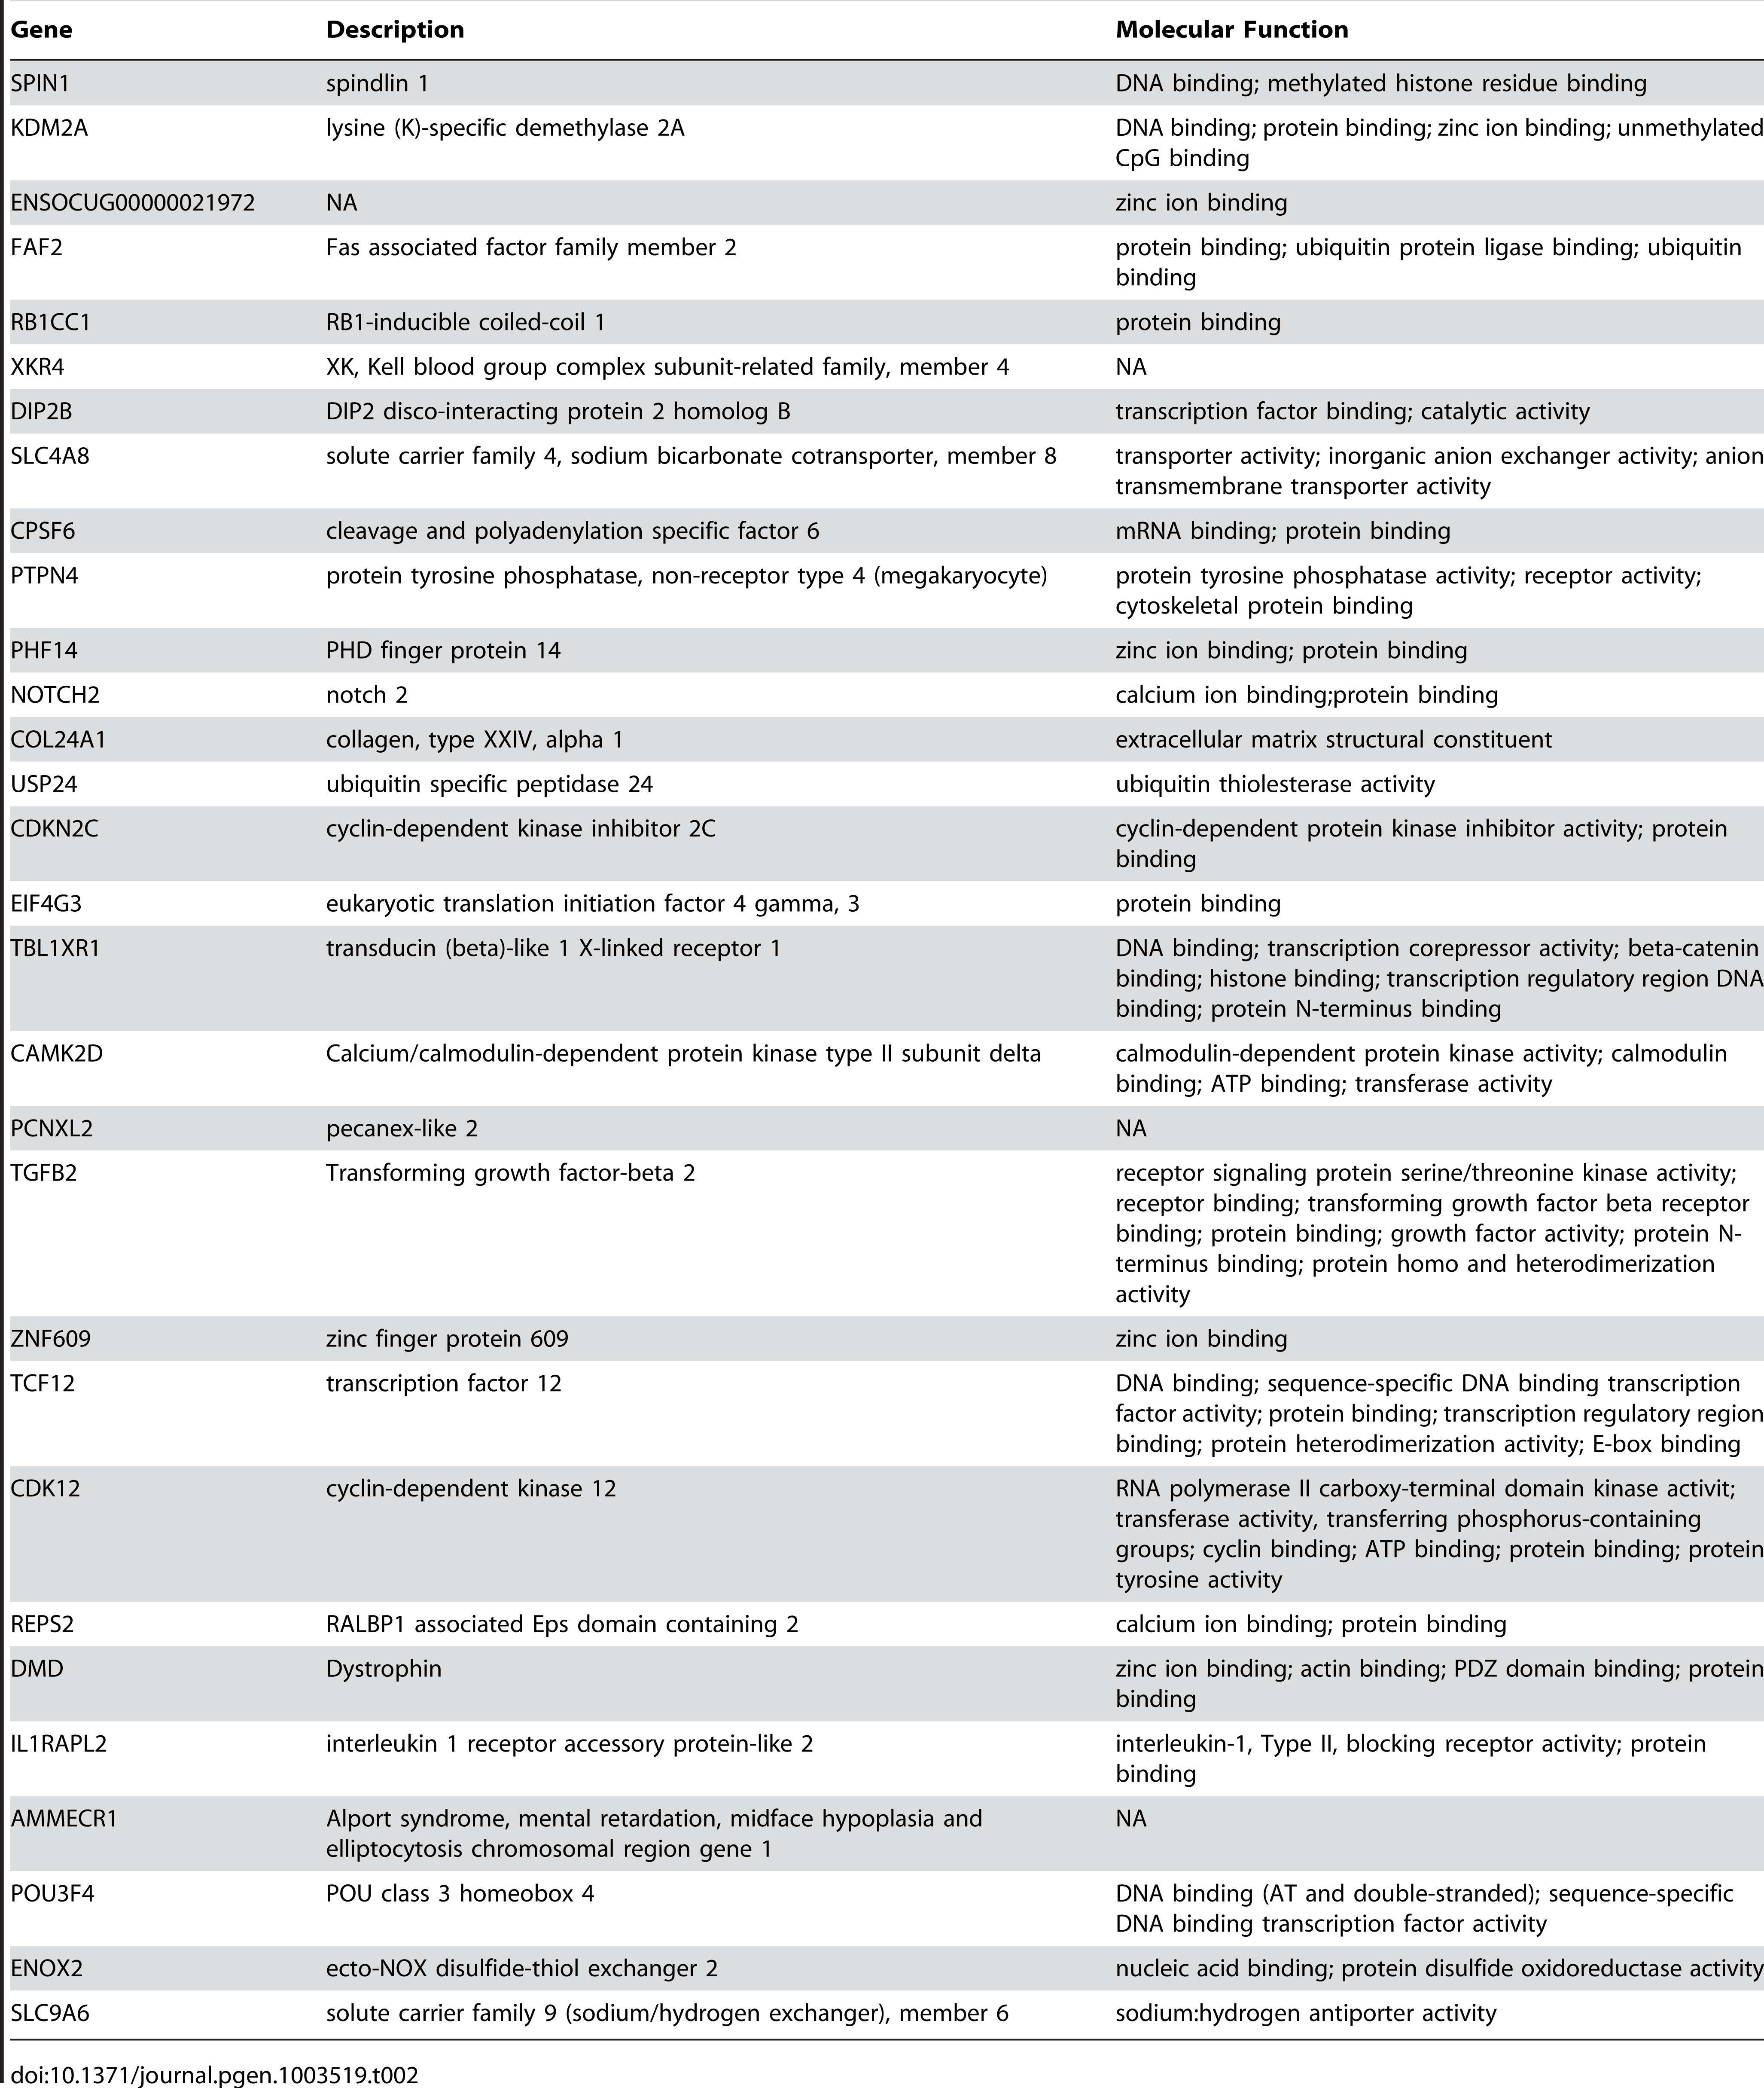 List of protein coding genes found in regions of differentiation containing a single annotated gene.